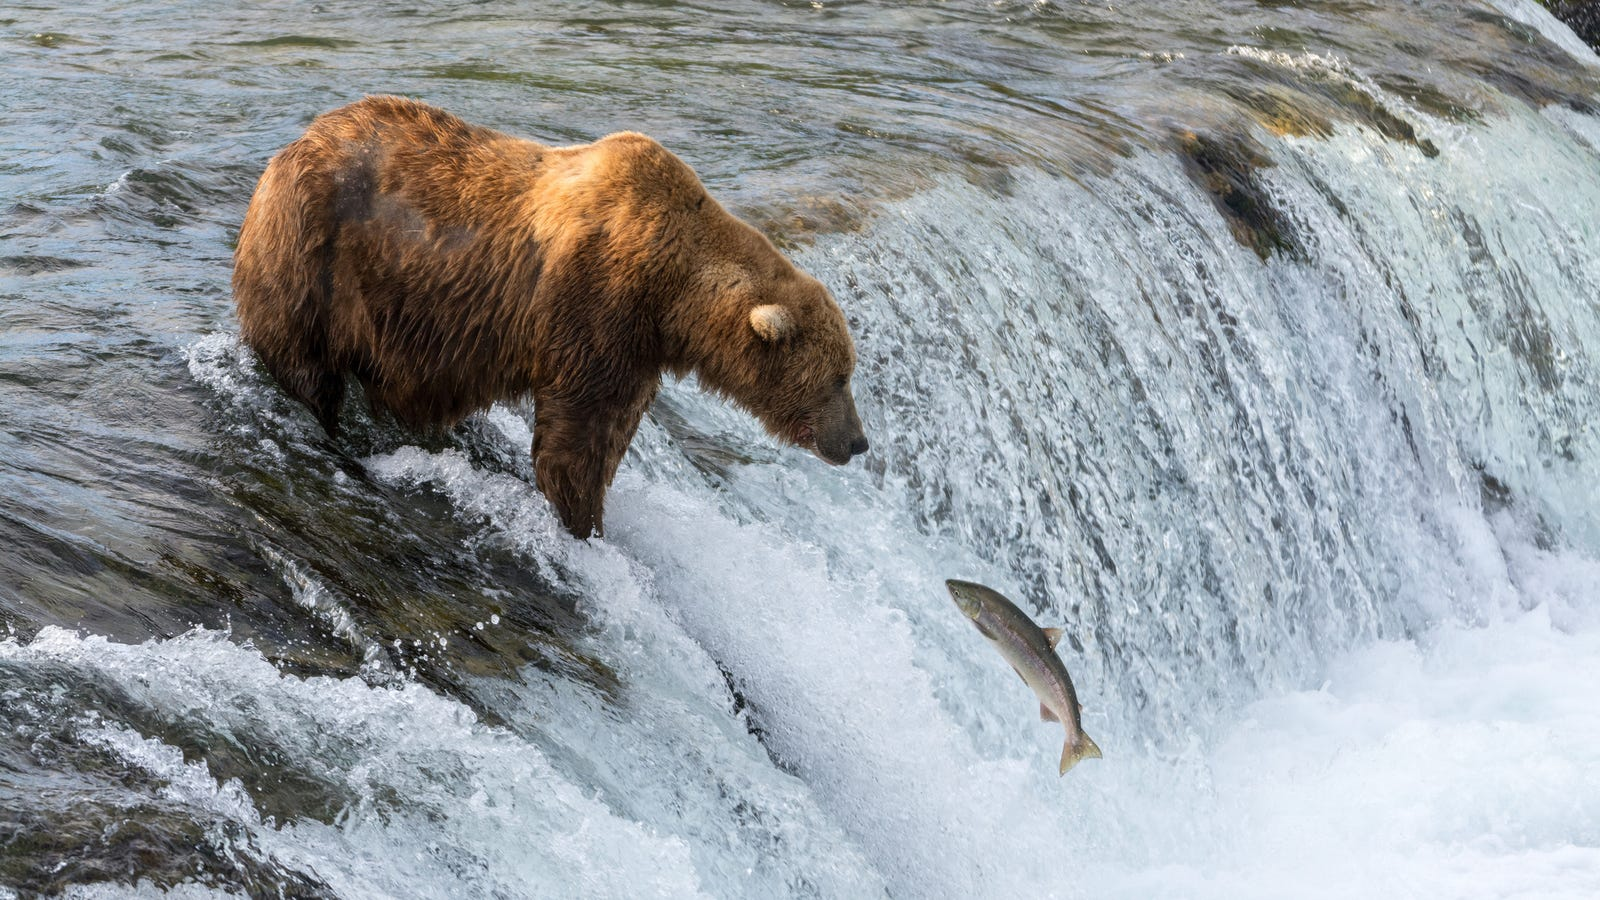 These bears decided to stop eating salmon thanks to for Do fish make noise